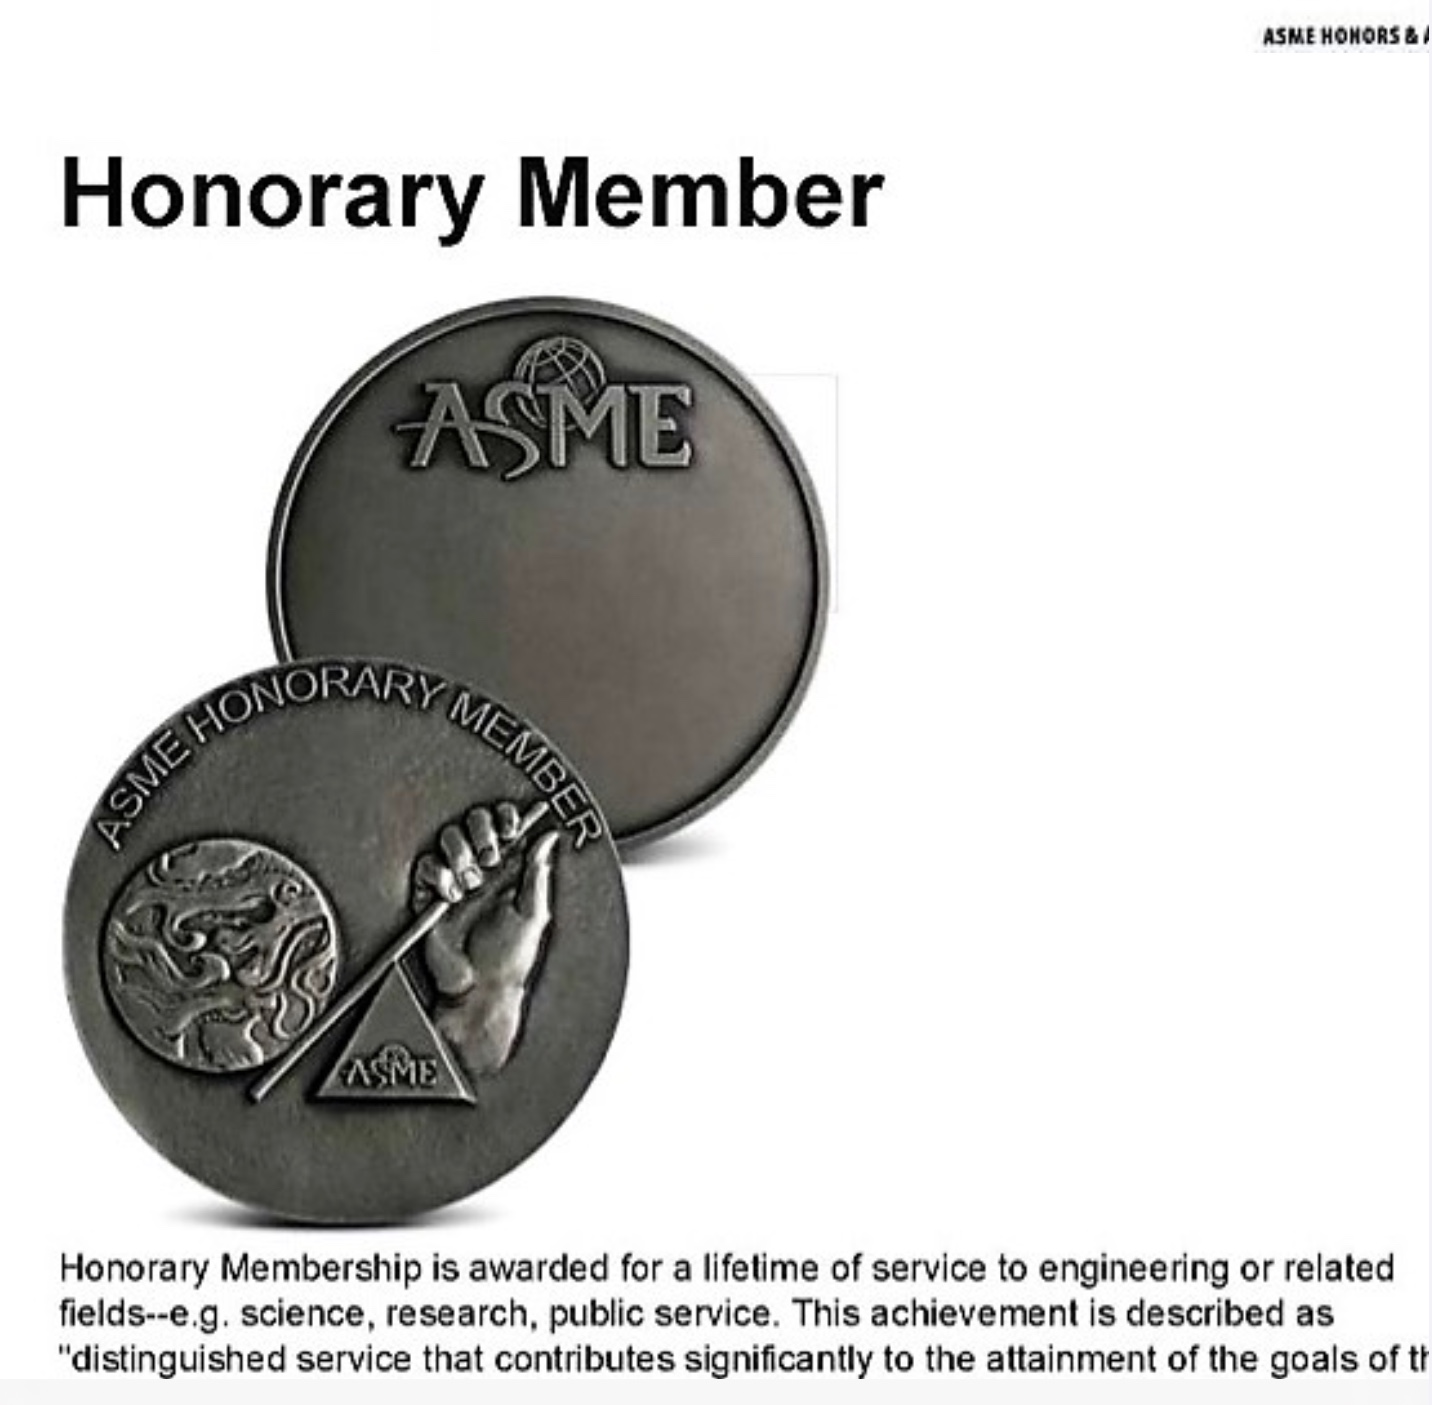 77. ASME Honorary Member Award/黃界清教授 (Je-Chin Han) /2020